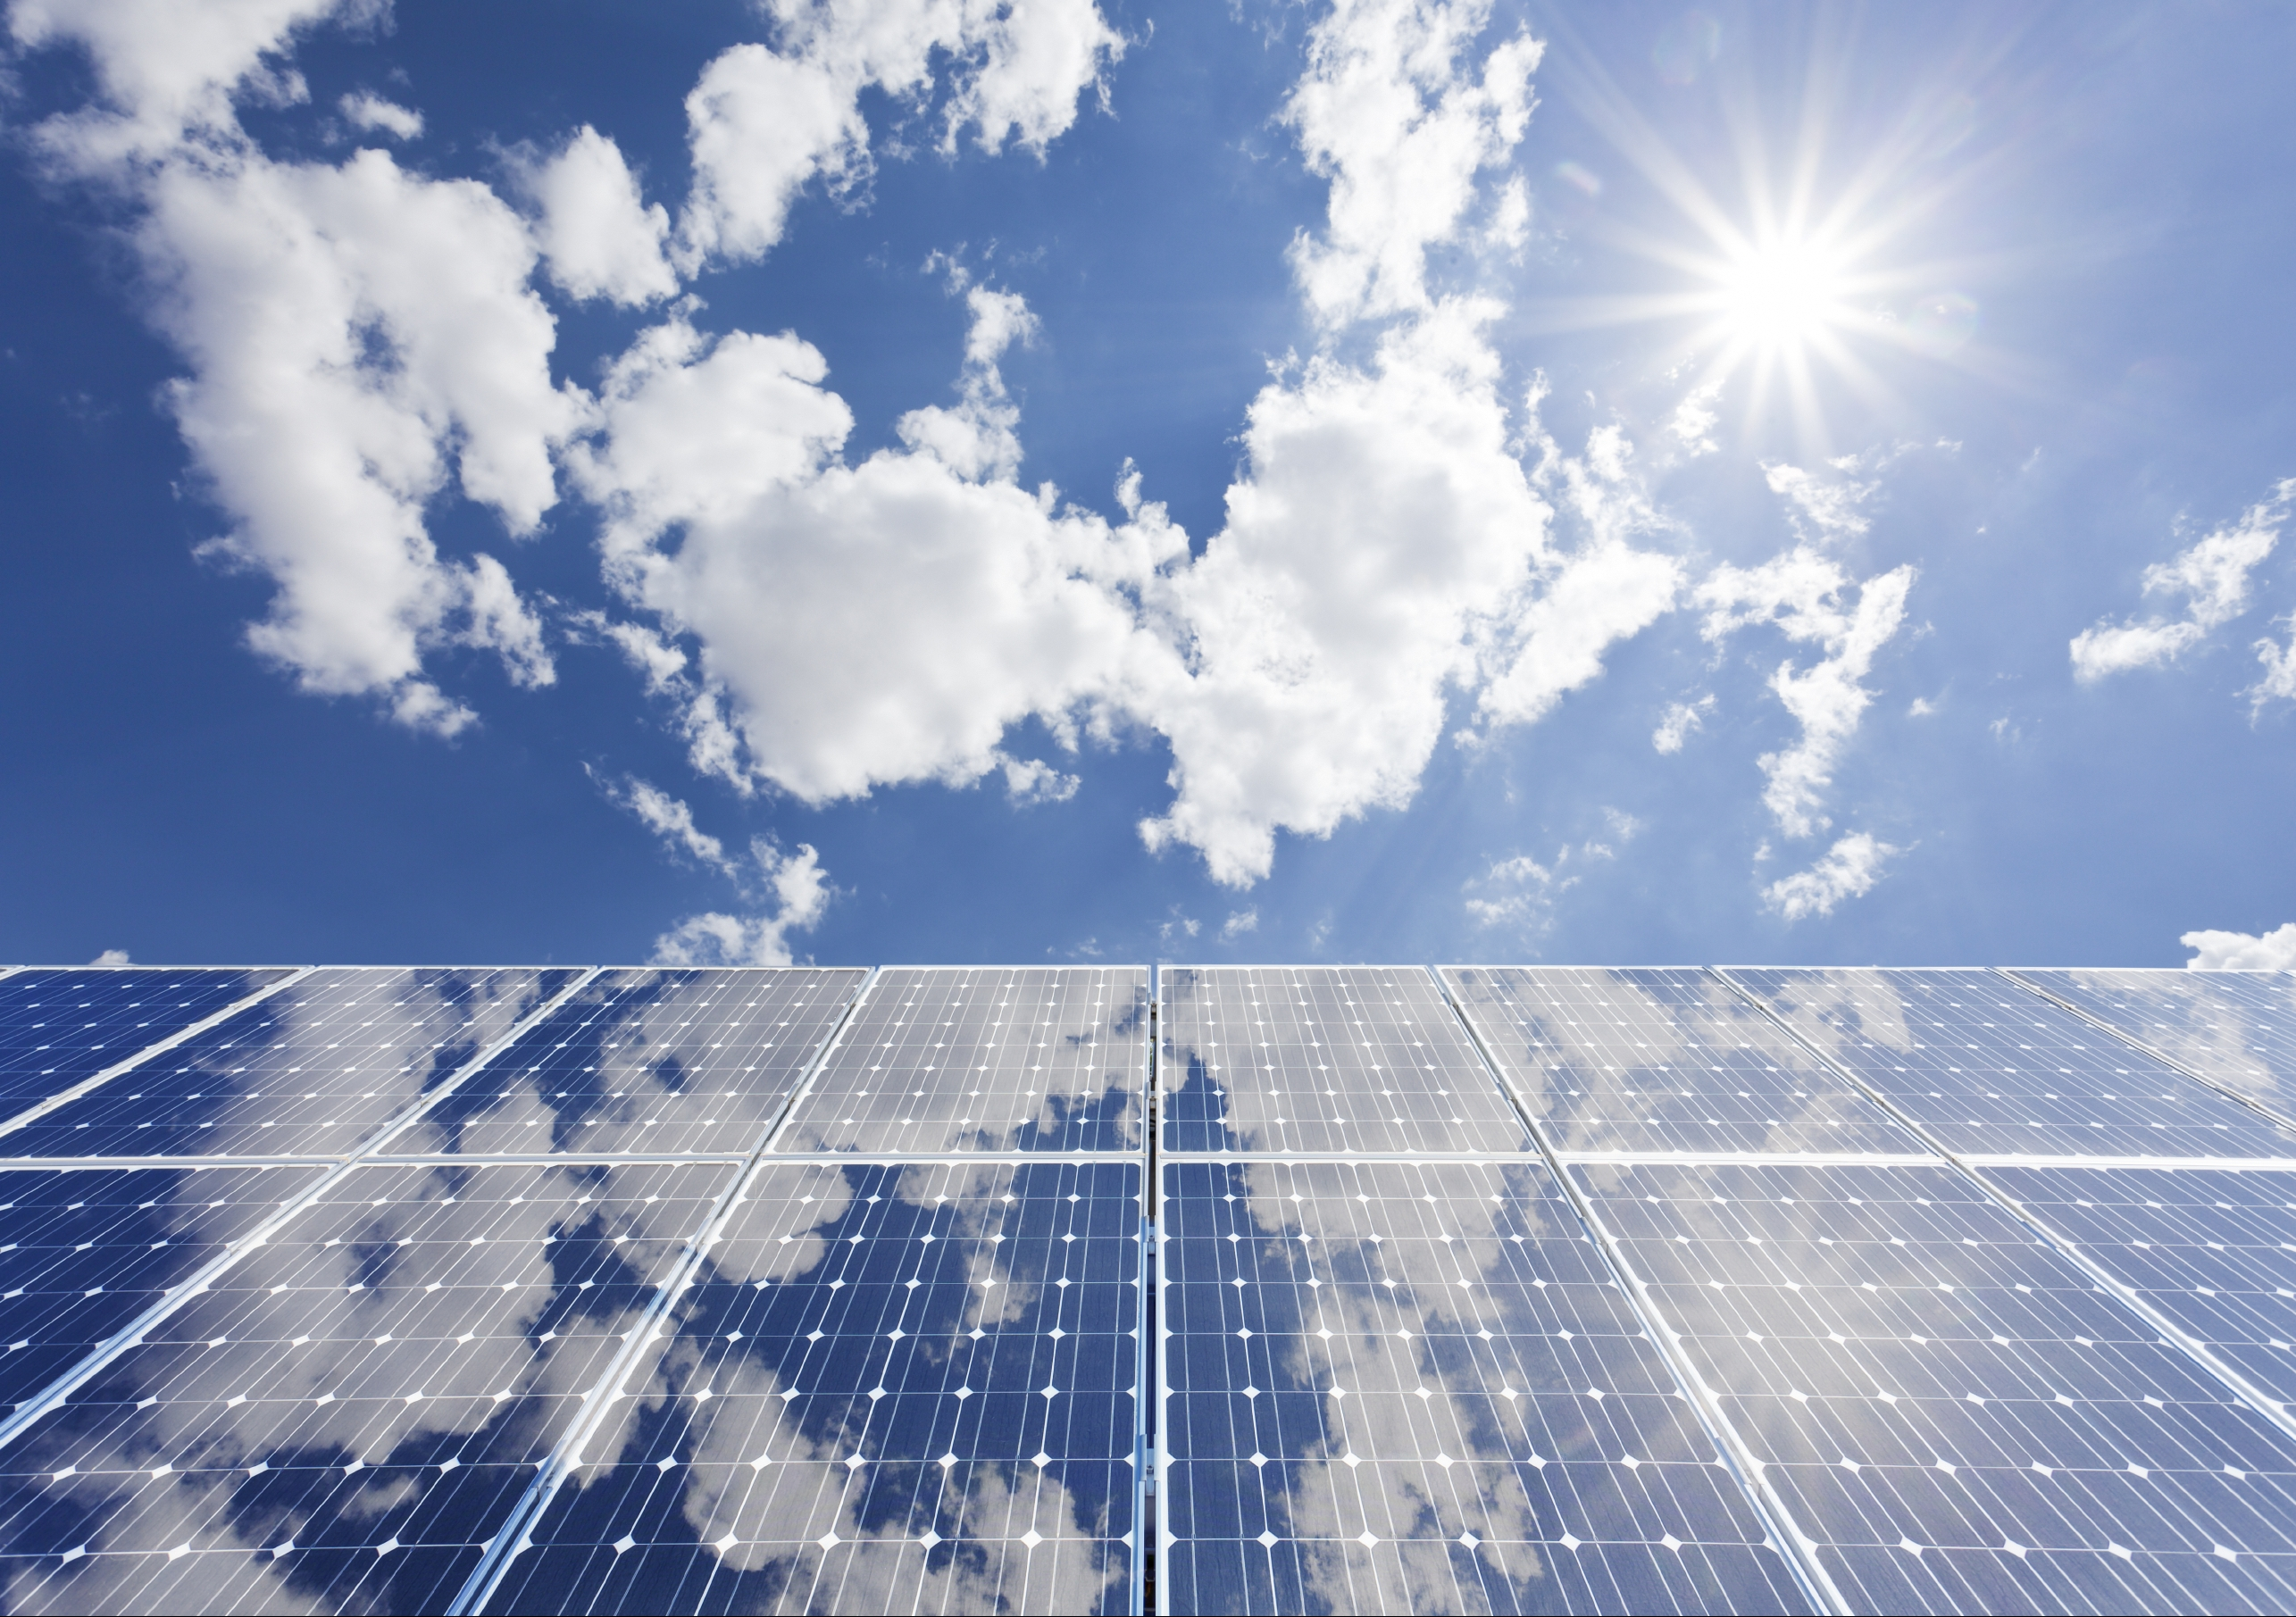 The Clean Energy Transition